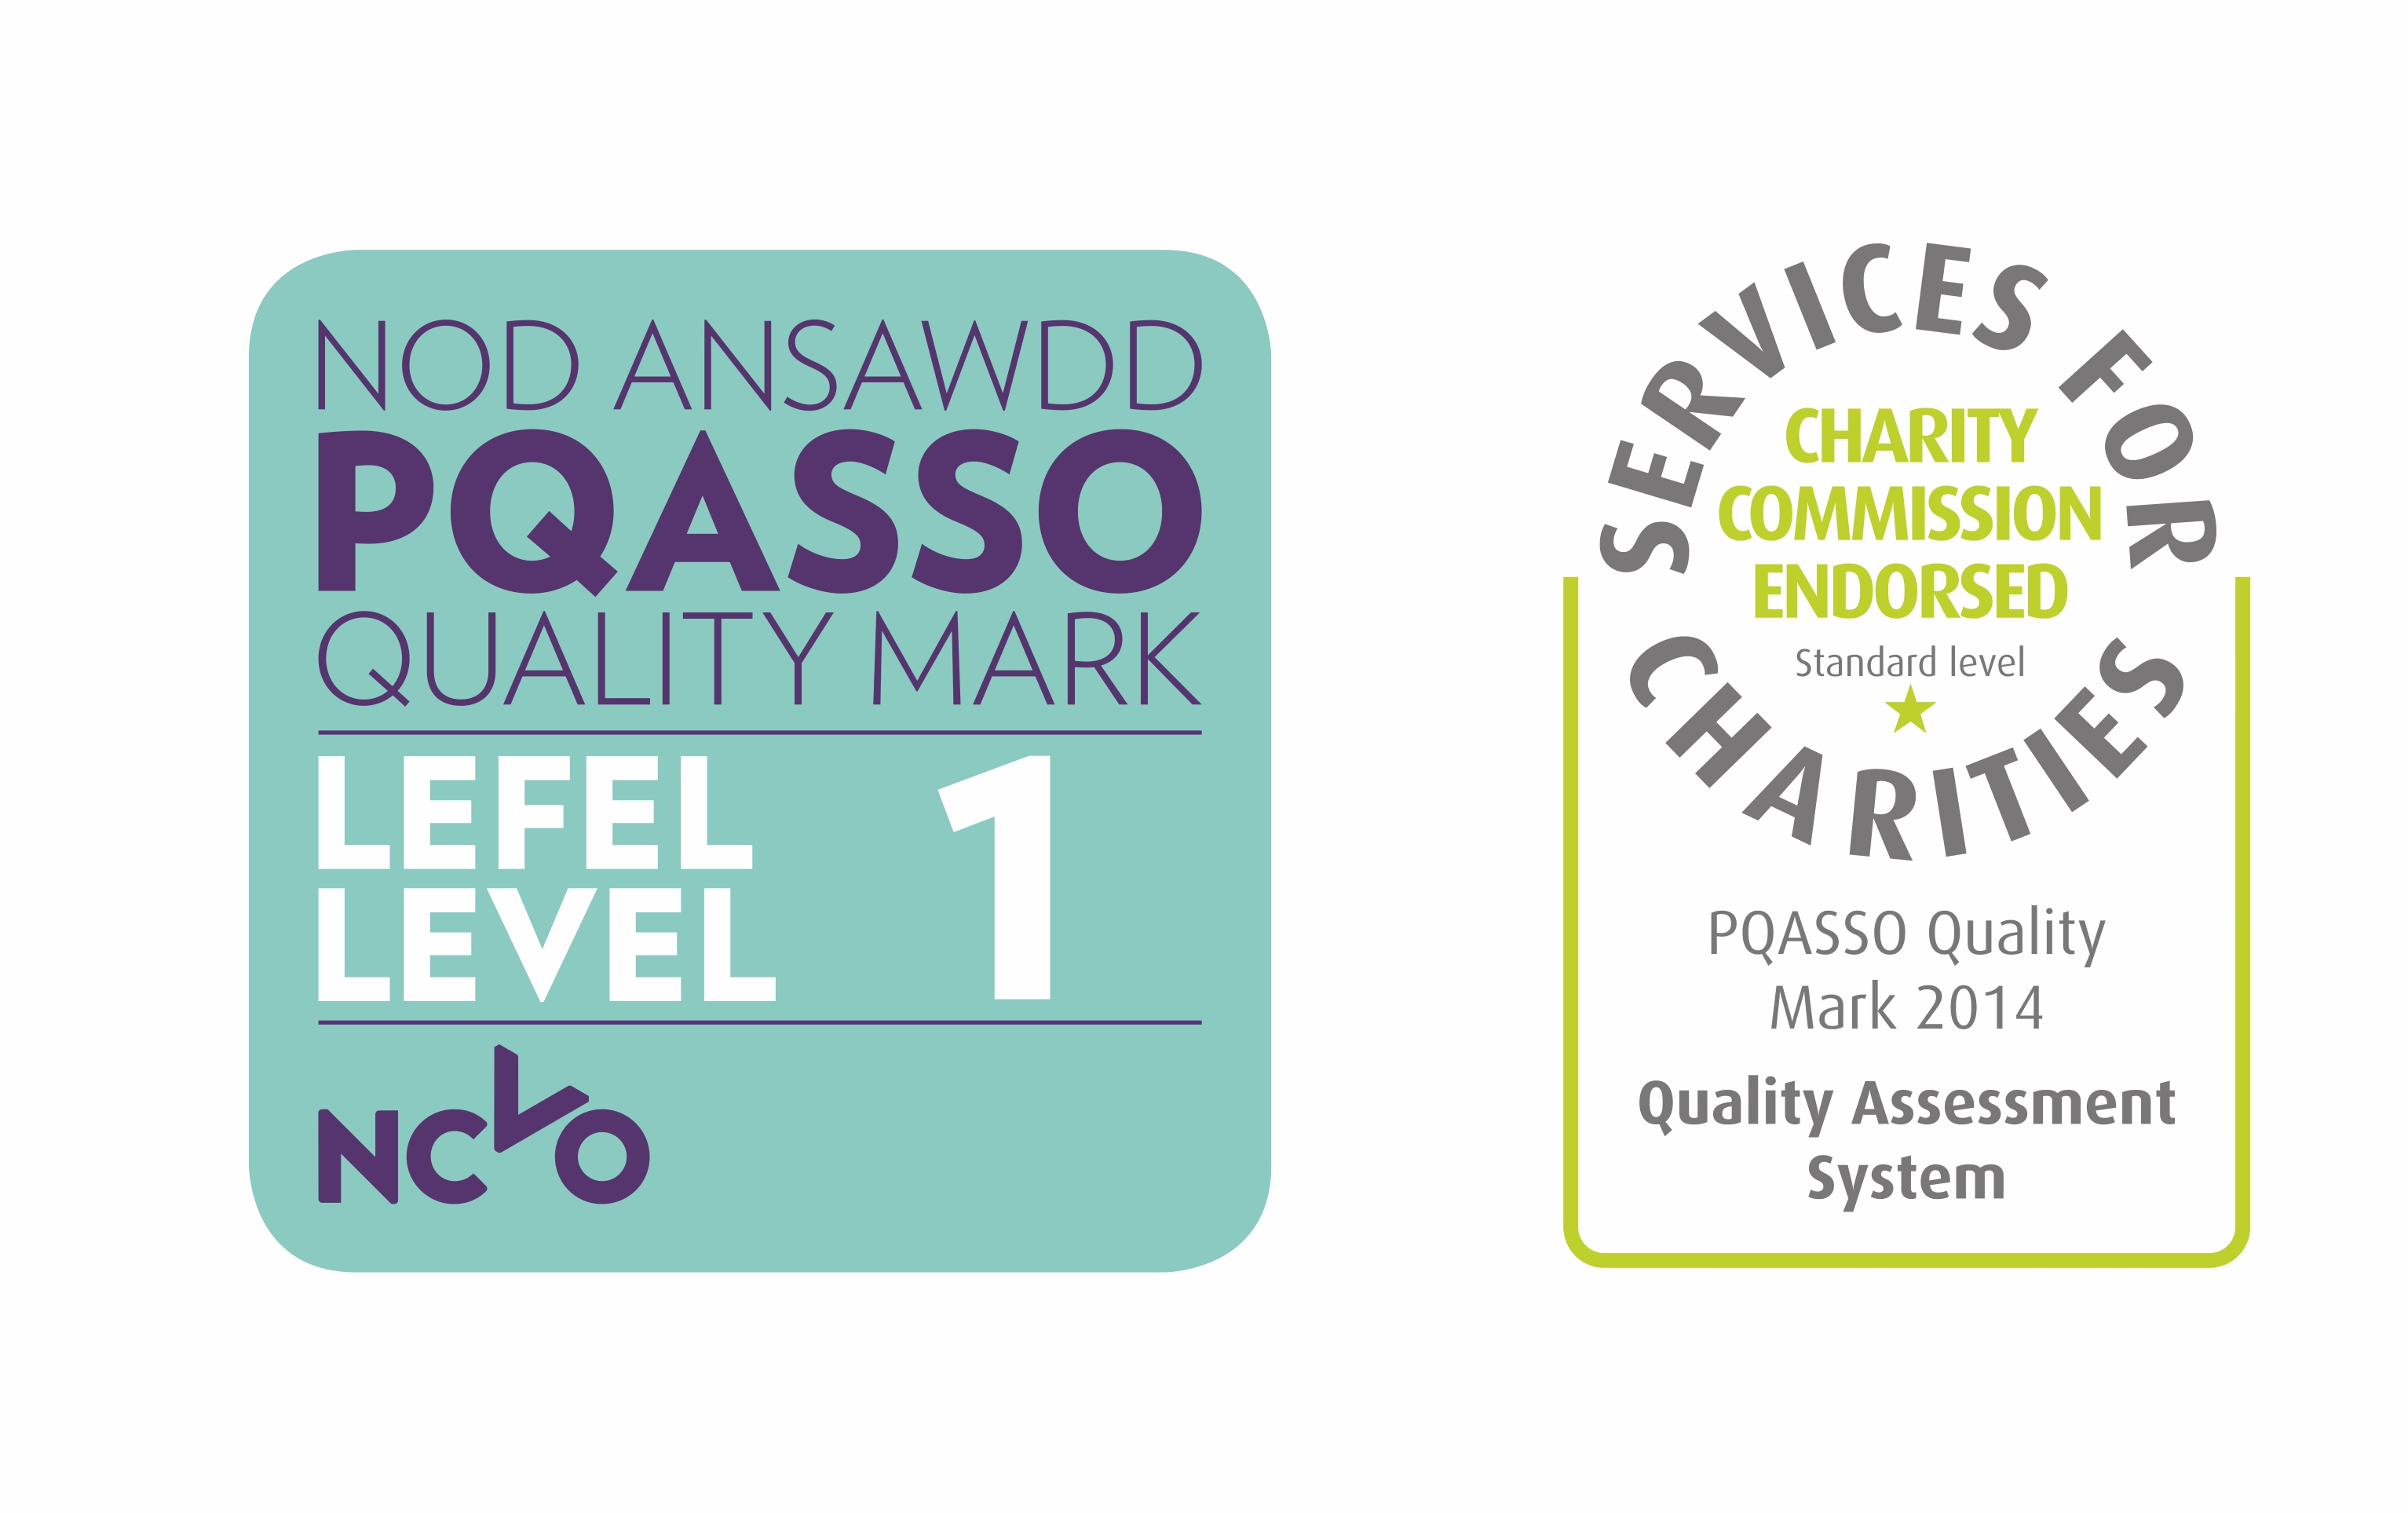 PQASSO Quality Mark Level 1 and Charity Commission Endorsement QAS Badge combined